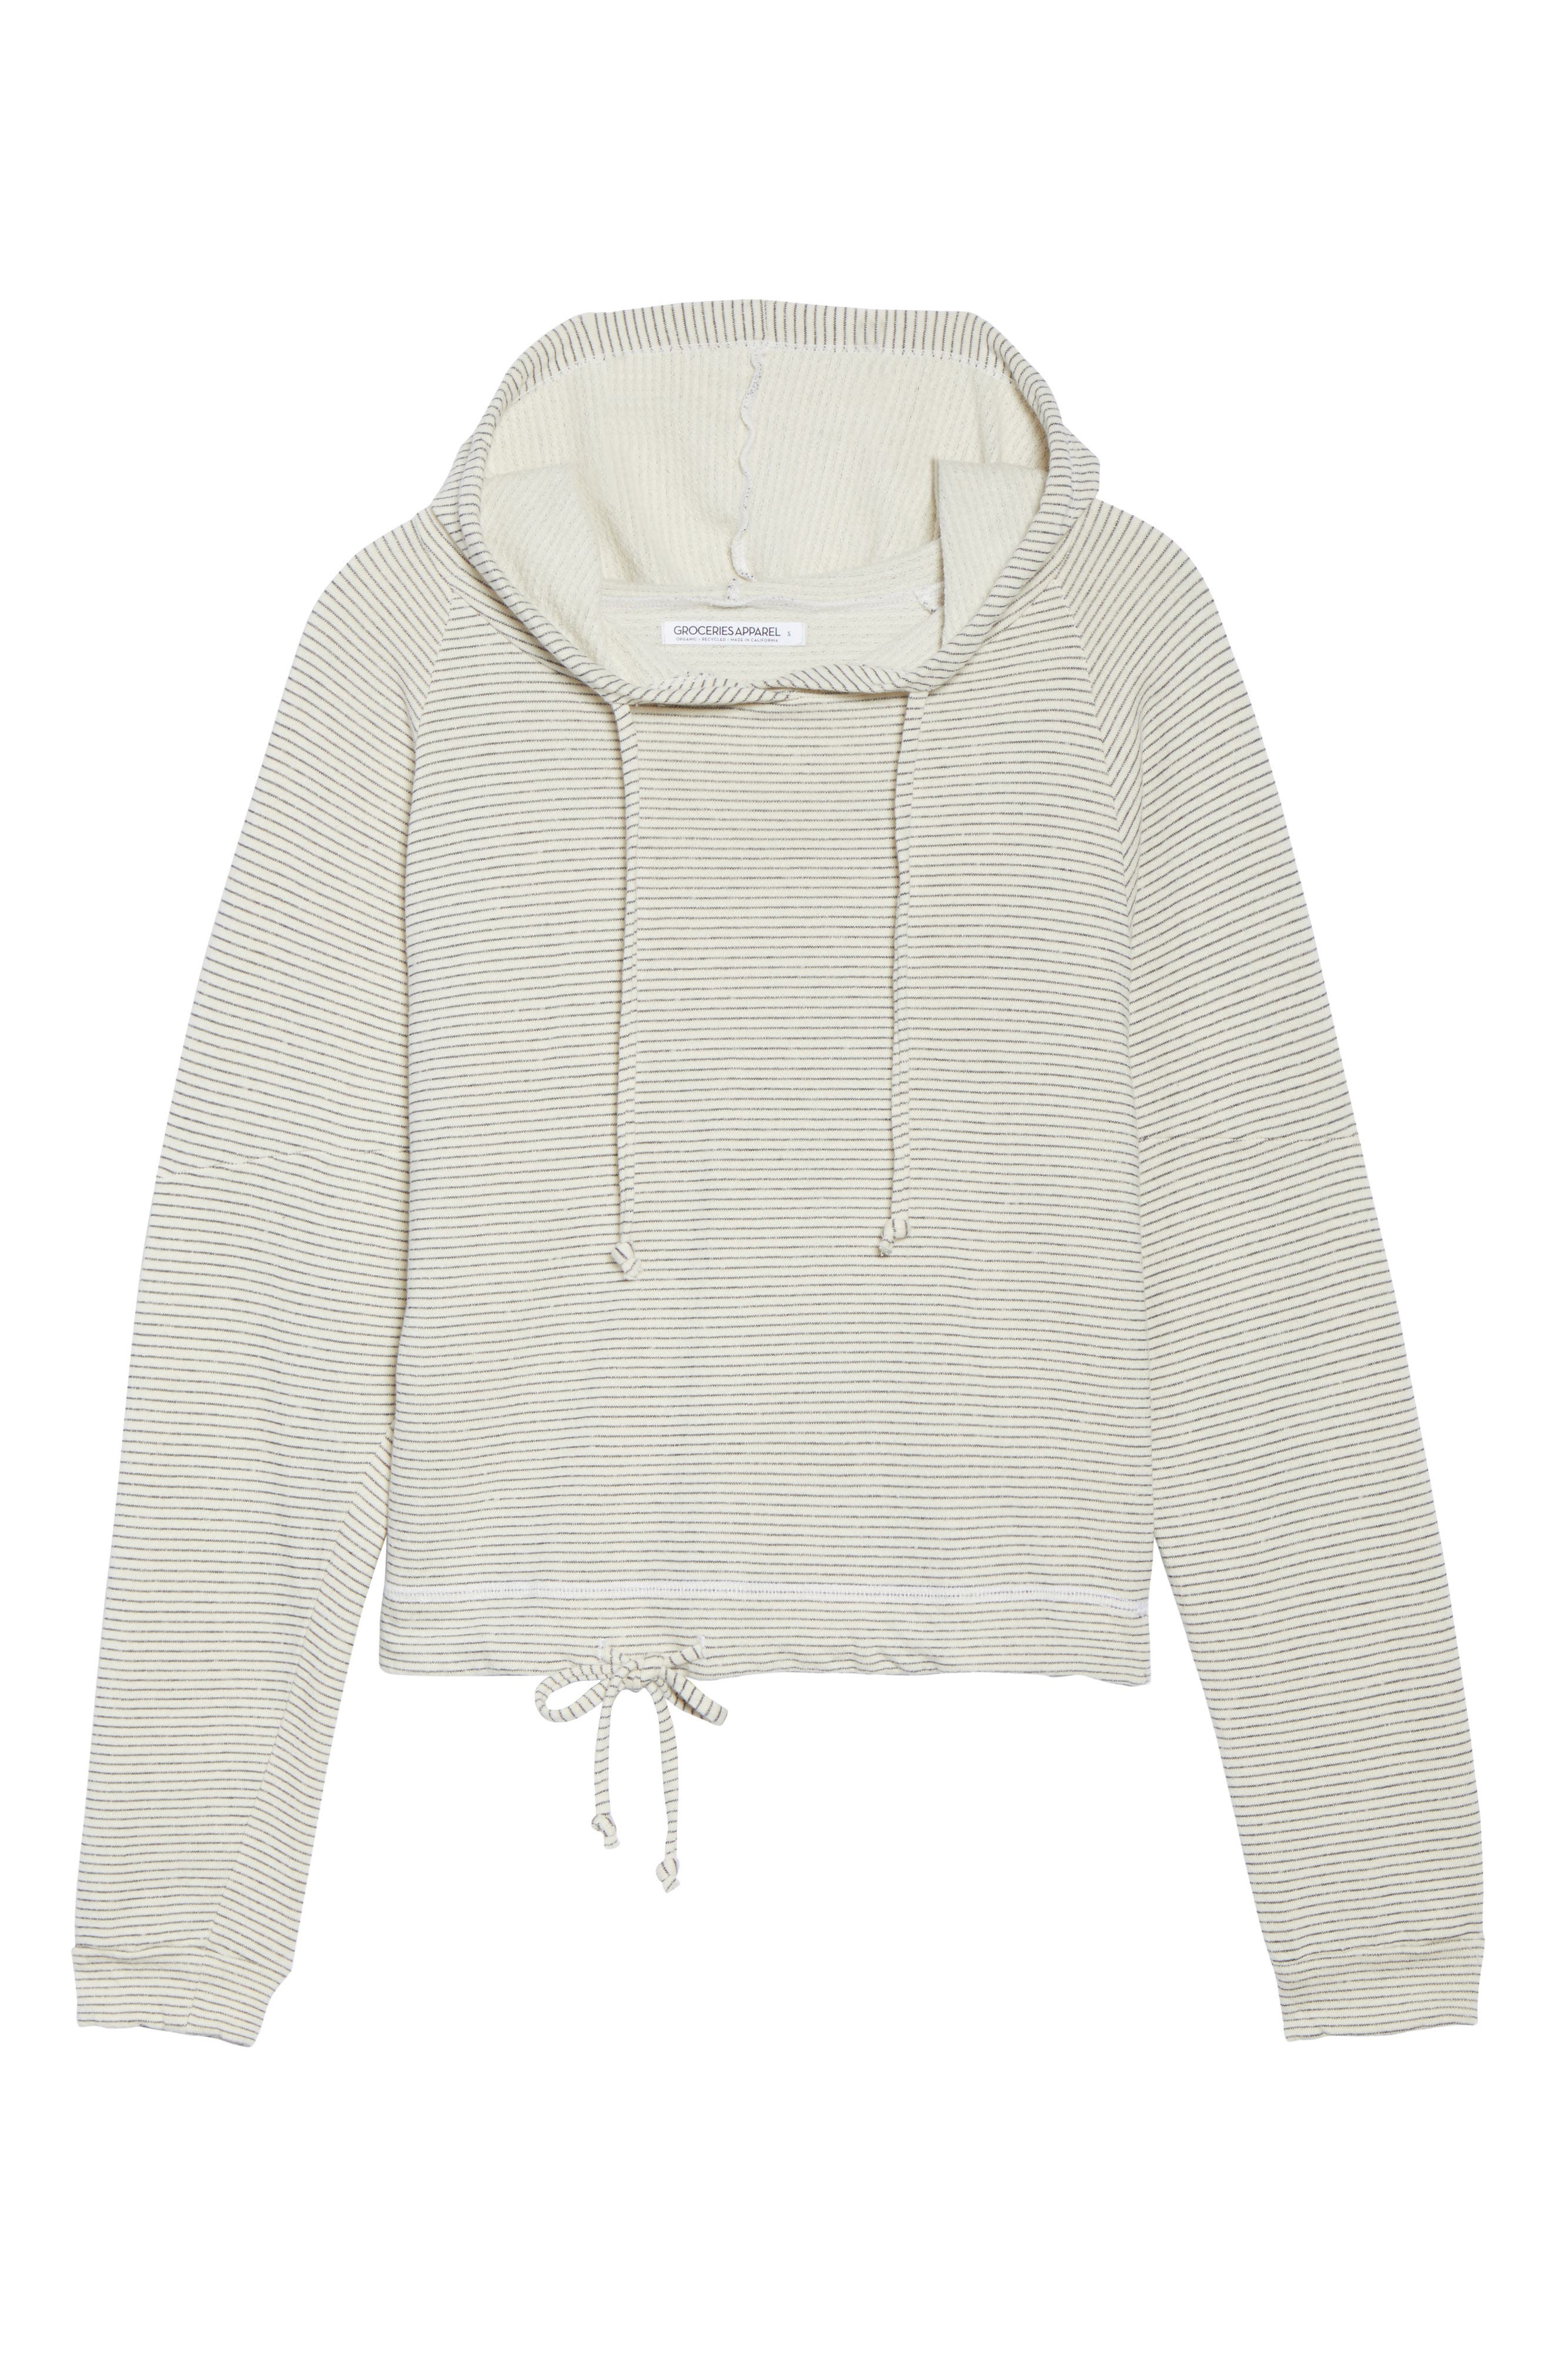 Apparel Atwater Stripe Hoodie,                             Alternate thumbnail 6, color,                             NATURAL